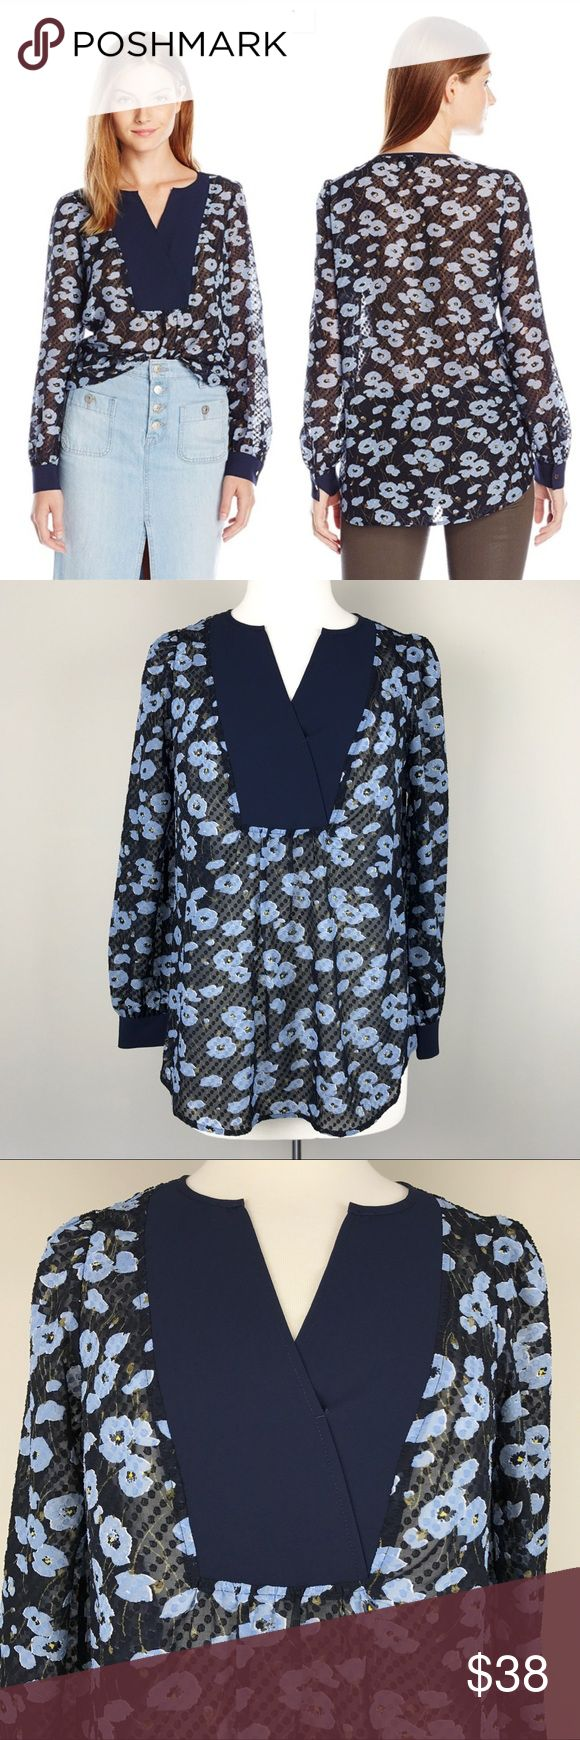 """{Jones New York} Dot Texture Floral Blouse, $69.50 This top lends a touch of romance to any look with its pretty floral print on sheer Swiss dot fabric and full poet sleeves. Fabric: 100% Polyester - Long sleeves - Single-button cuff with slit - Split neckline - Curved hemline - Pullover style - Sheer design - Style# JMMEKR3025 - Color: Navy  * Armpit to Armpit: 19.25"""" * Length: back 27.5"""" * Armpit to hem: 16"""" * Shoulders: 16"""" * Sleeve length: 23.75"""", armpit to cuff: 17.5"""" * Machine wash…"""